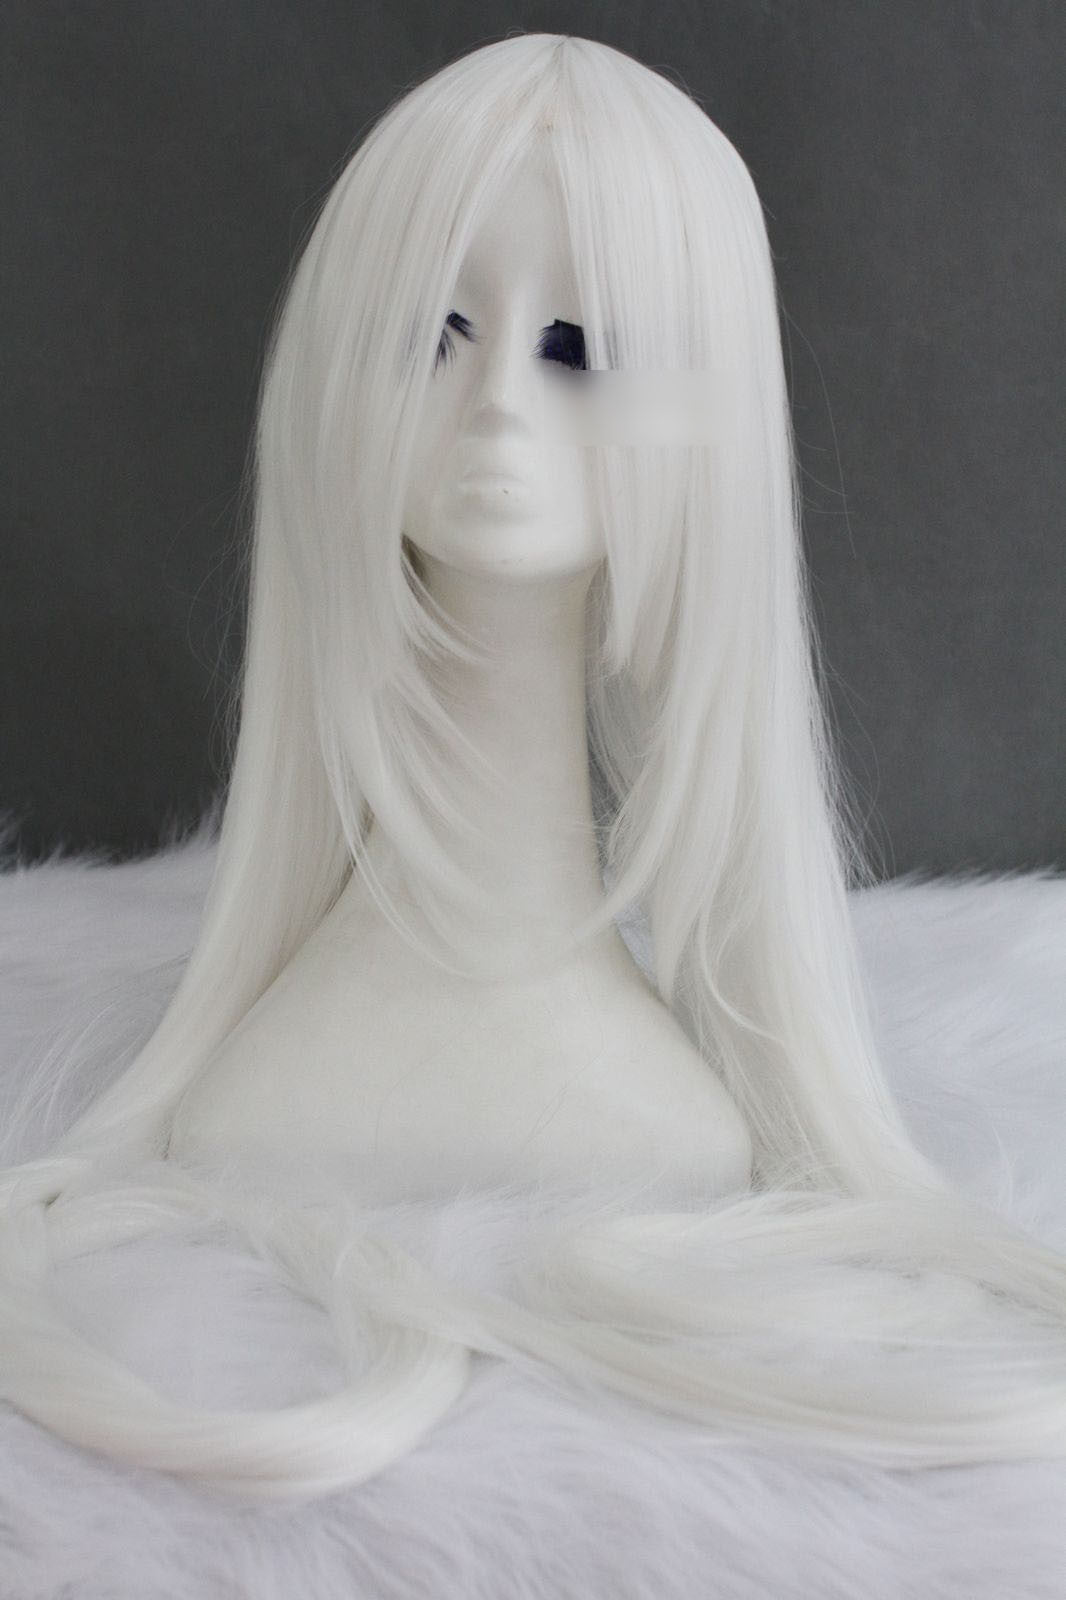 Silver/White super long anime cosplay wig